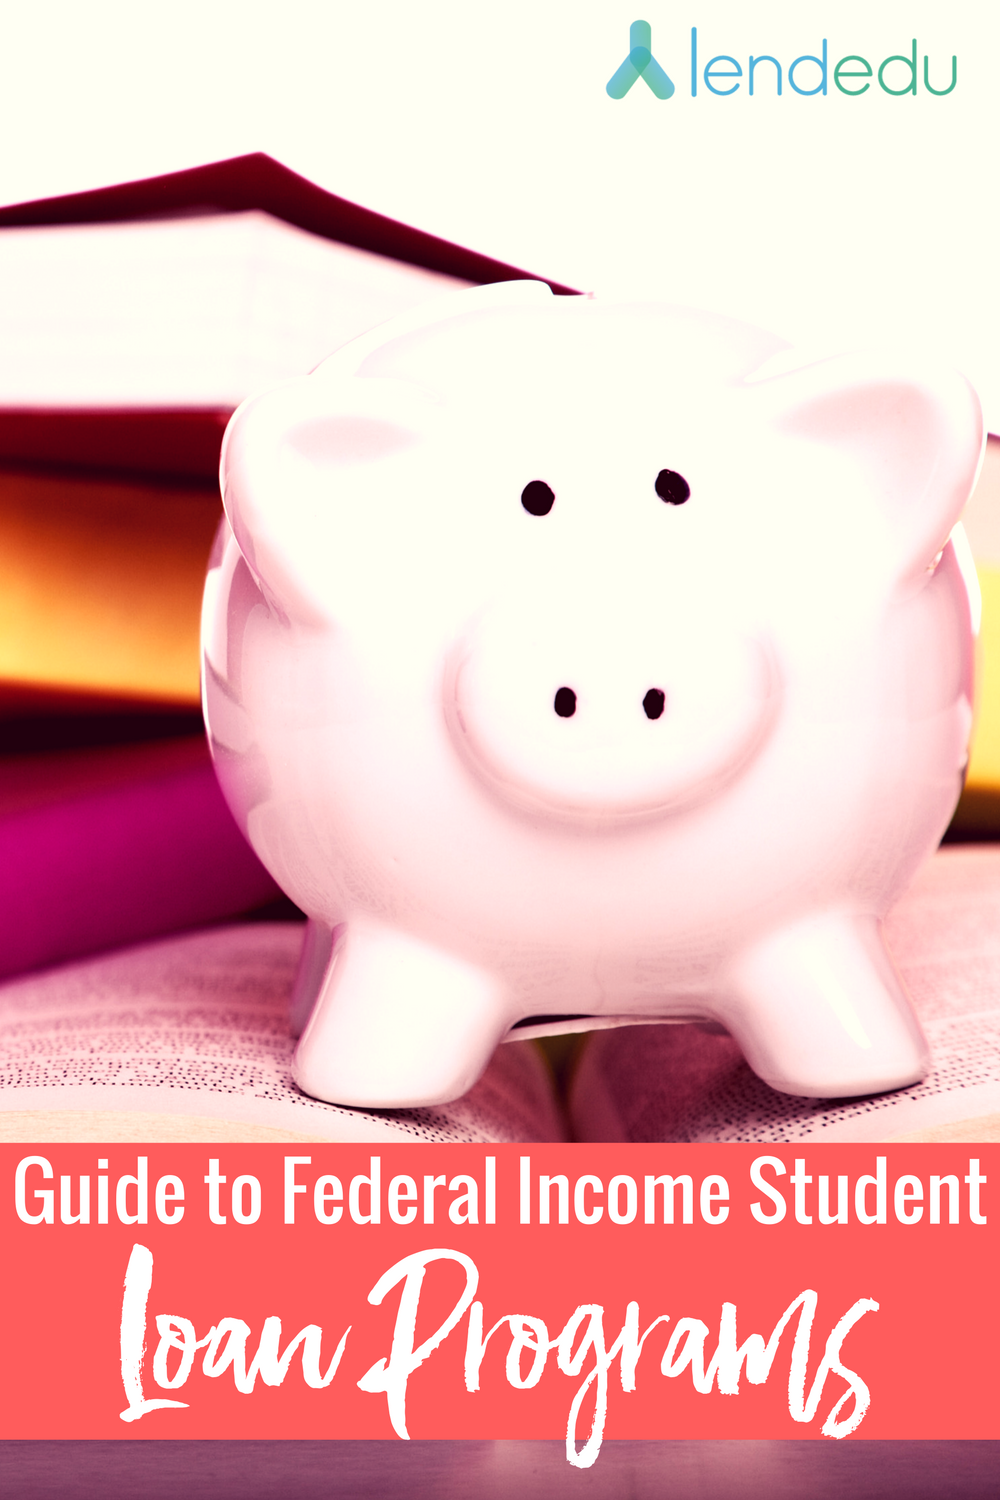 Guide to Federal Income Student Loan Programs